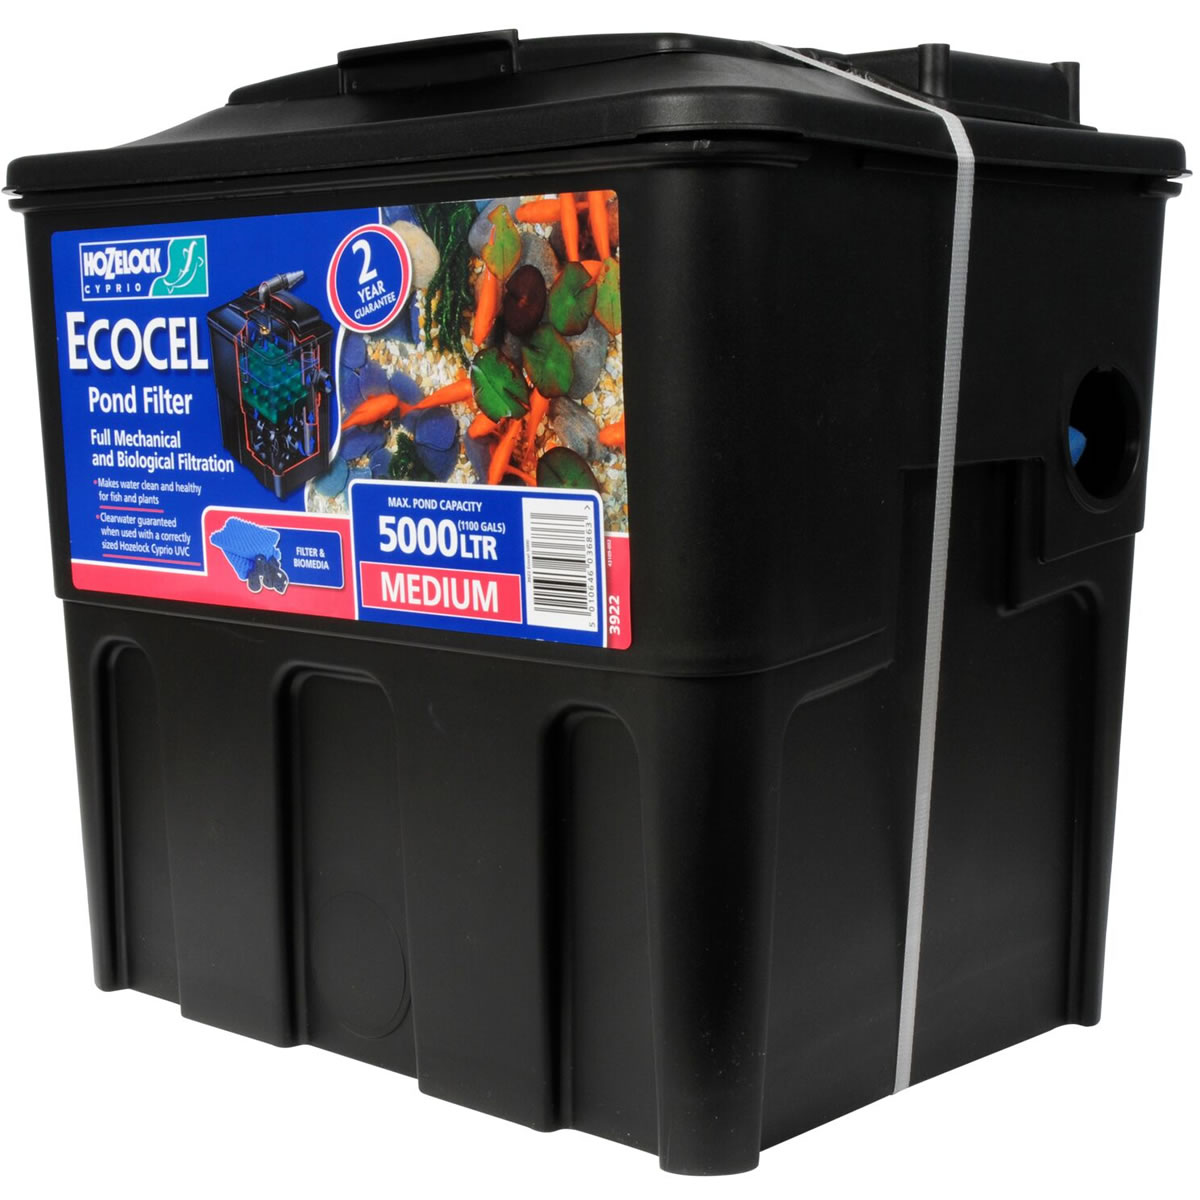 Extra image of Hozelock Ecocel 5000 Pond Filter